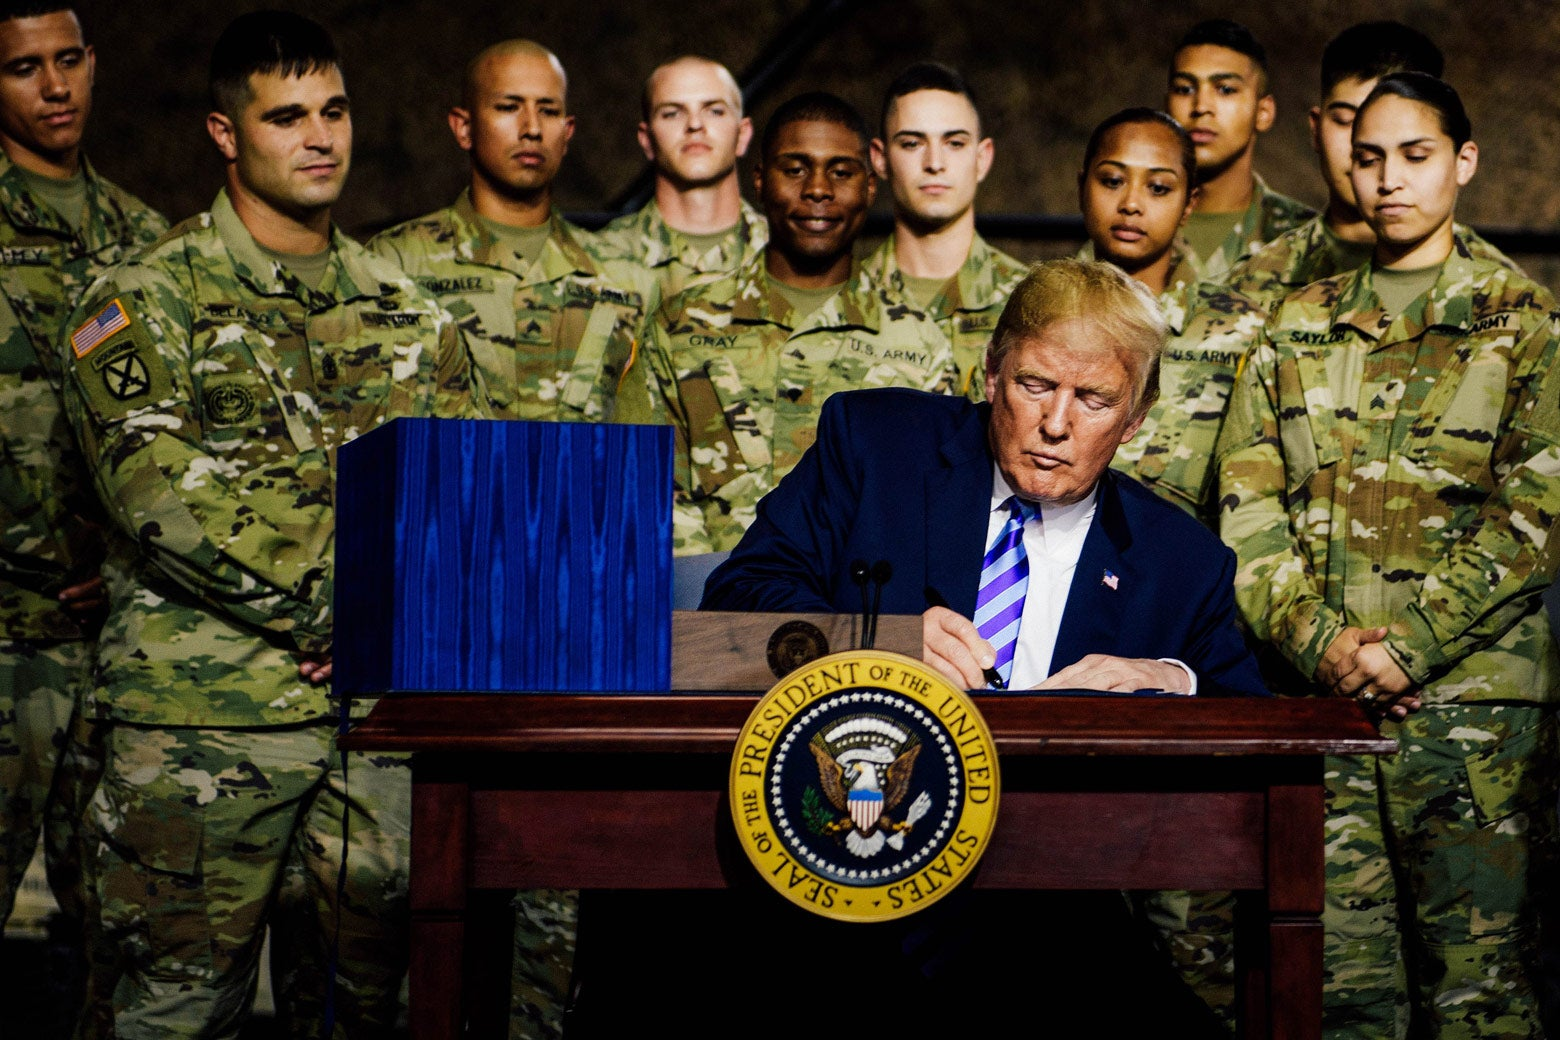 Donald Trump signs something at a desk with service members standing behind him.